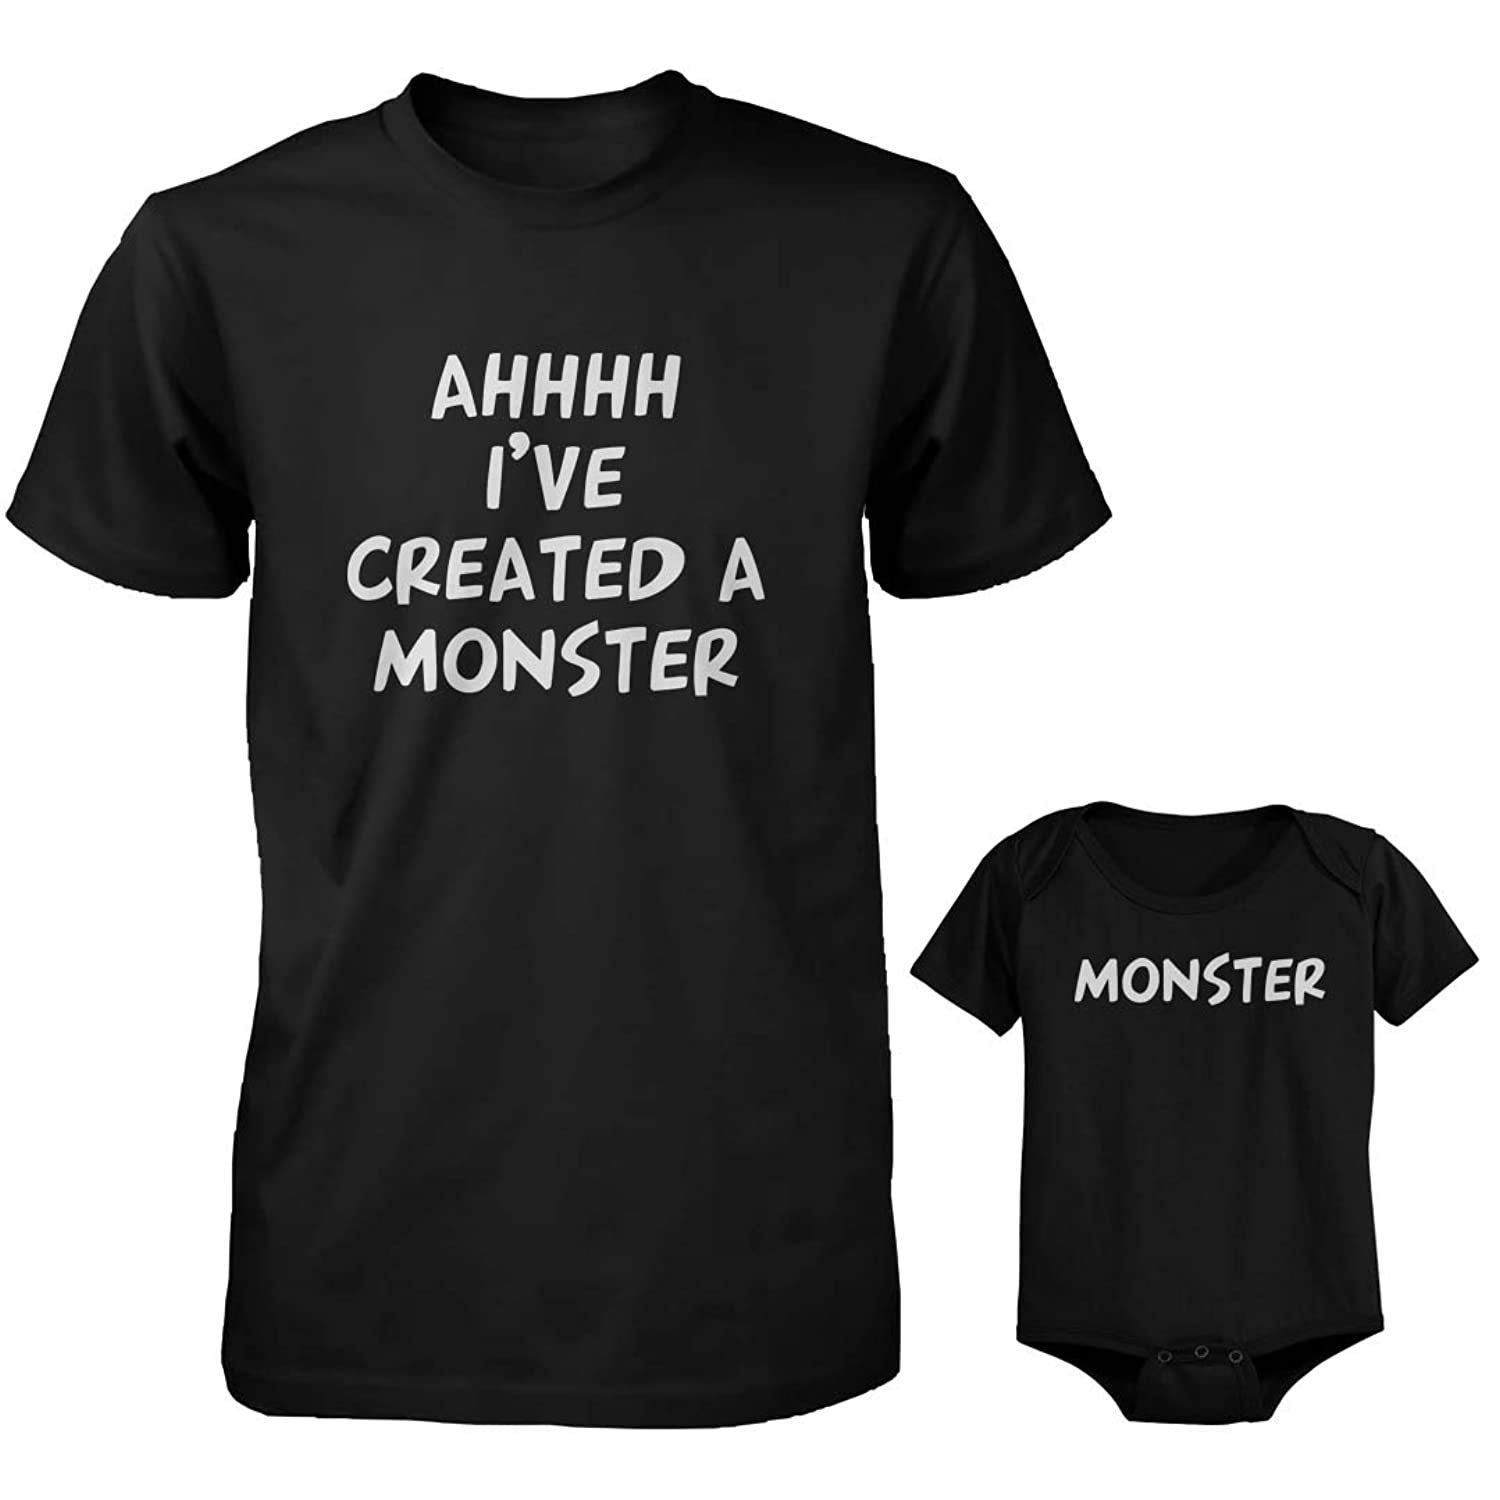 Black t shirt for babies - Amazon Com Daddy And Baby Matching T Shirt And Onesie Set Ahhh I Ve Created A Monster Clothing